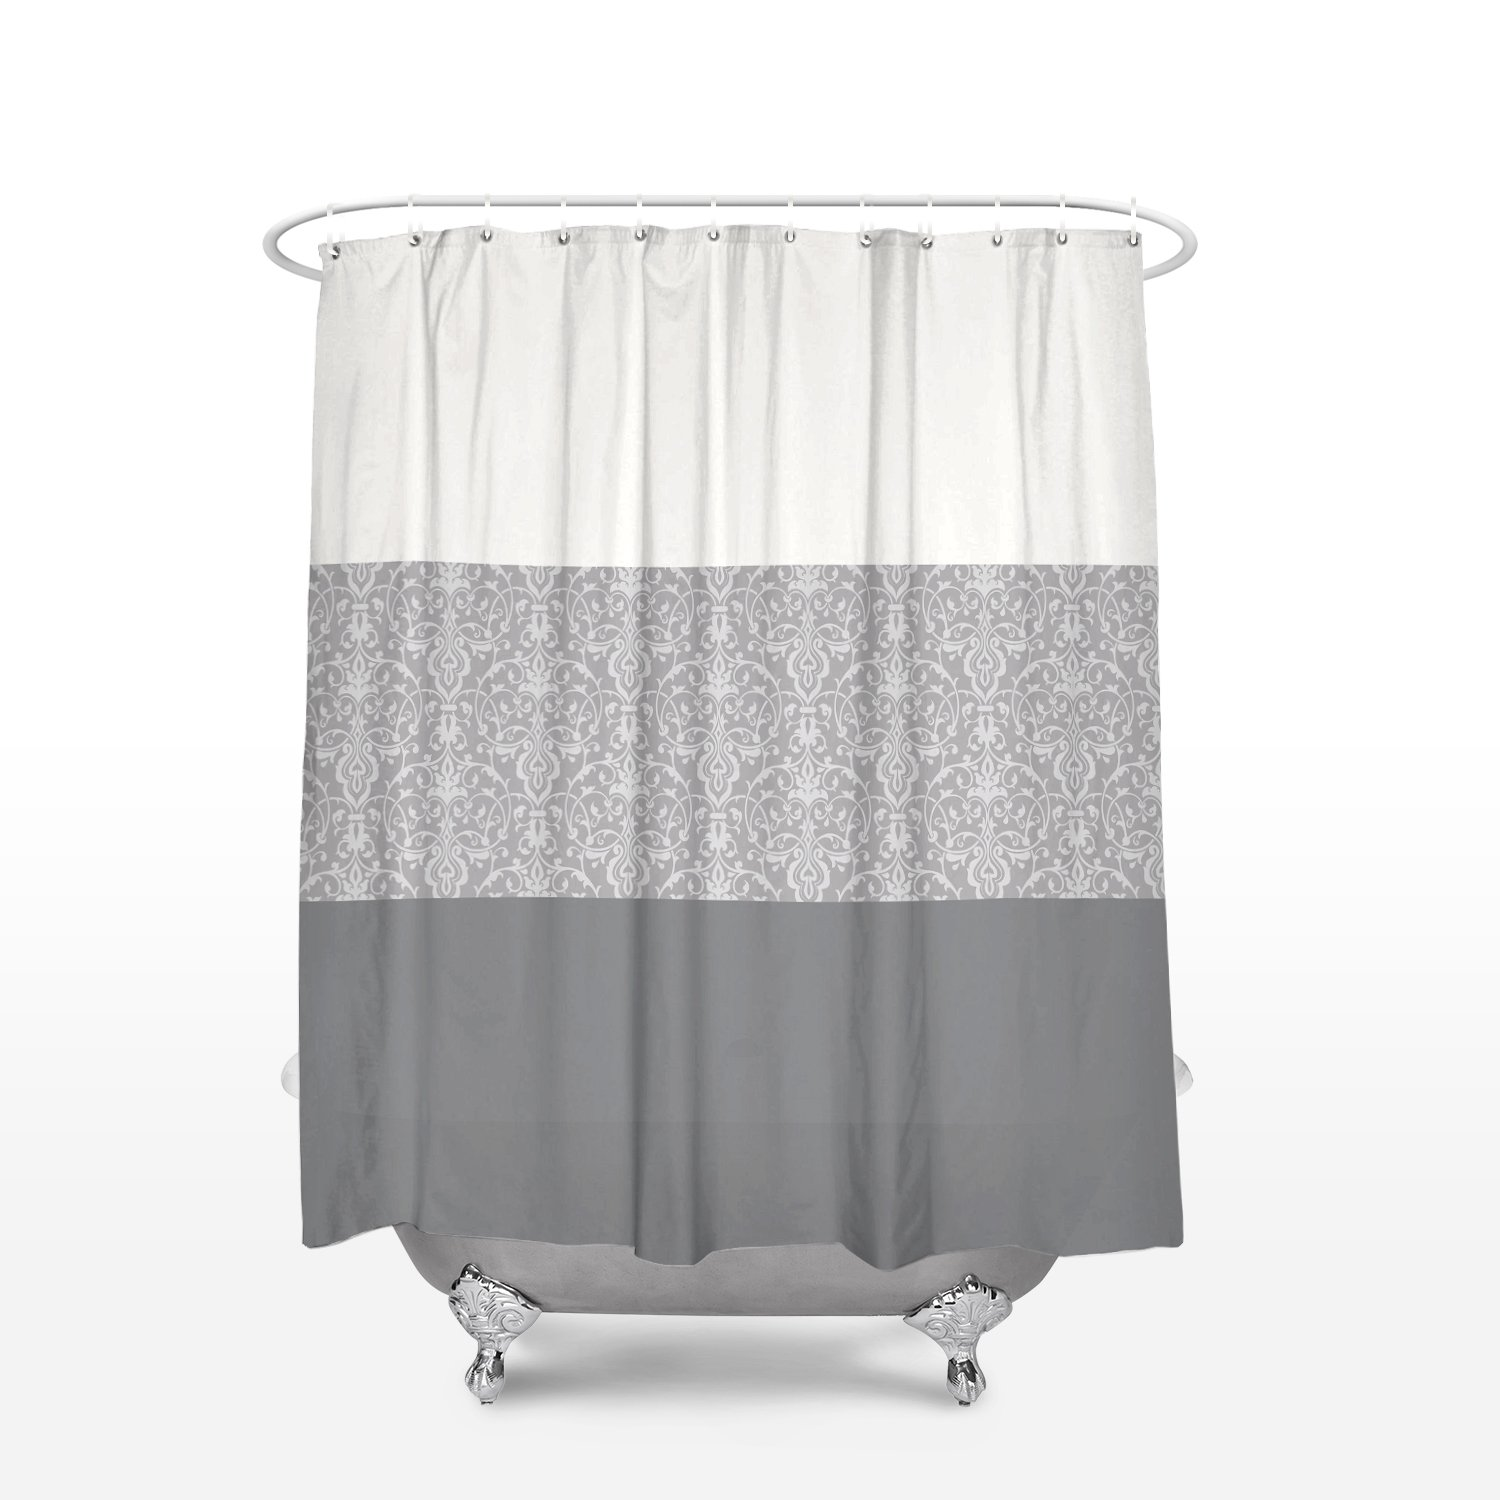 Classic Design Shower Curtain Seafoam Damask Print Waterproof Polyester Shower Curtains Hooks Bathroom 72x78inch Washable